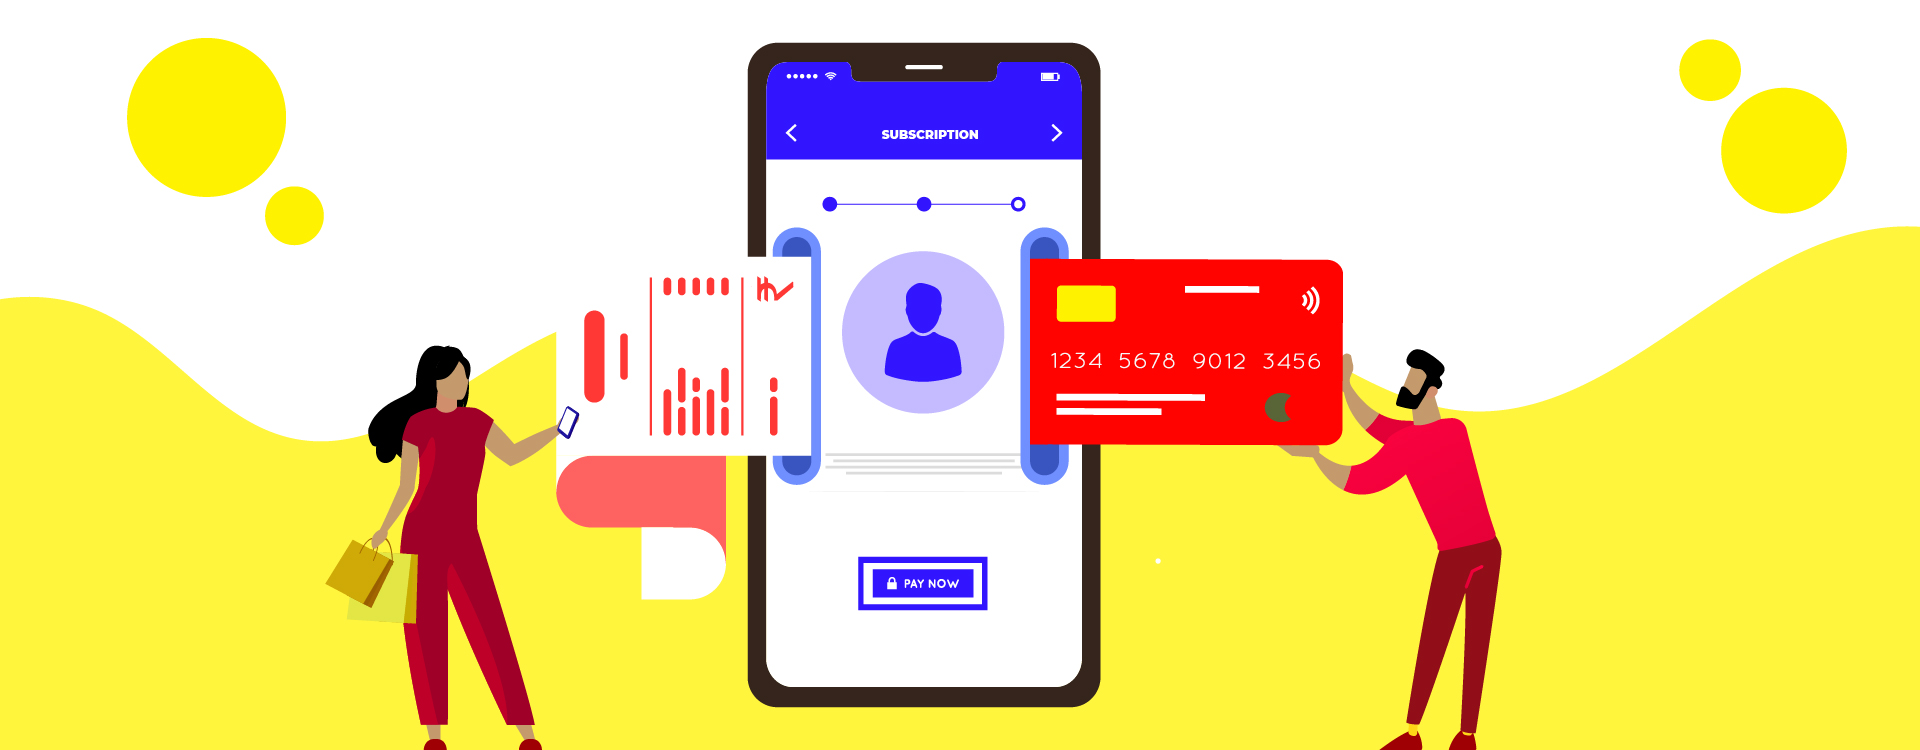 The subscription model is gaining popularity across various business verticals as it reduces the friction of customer again not going back for checkout.